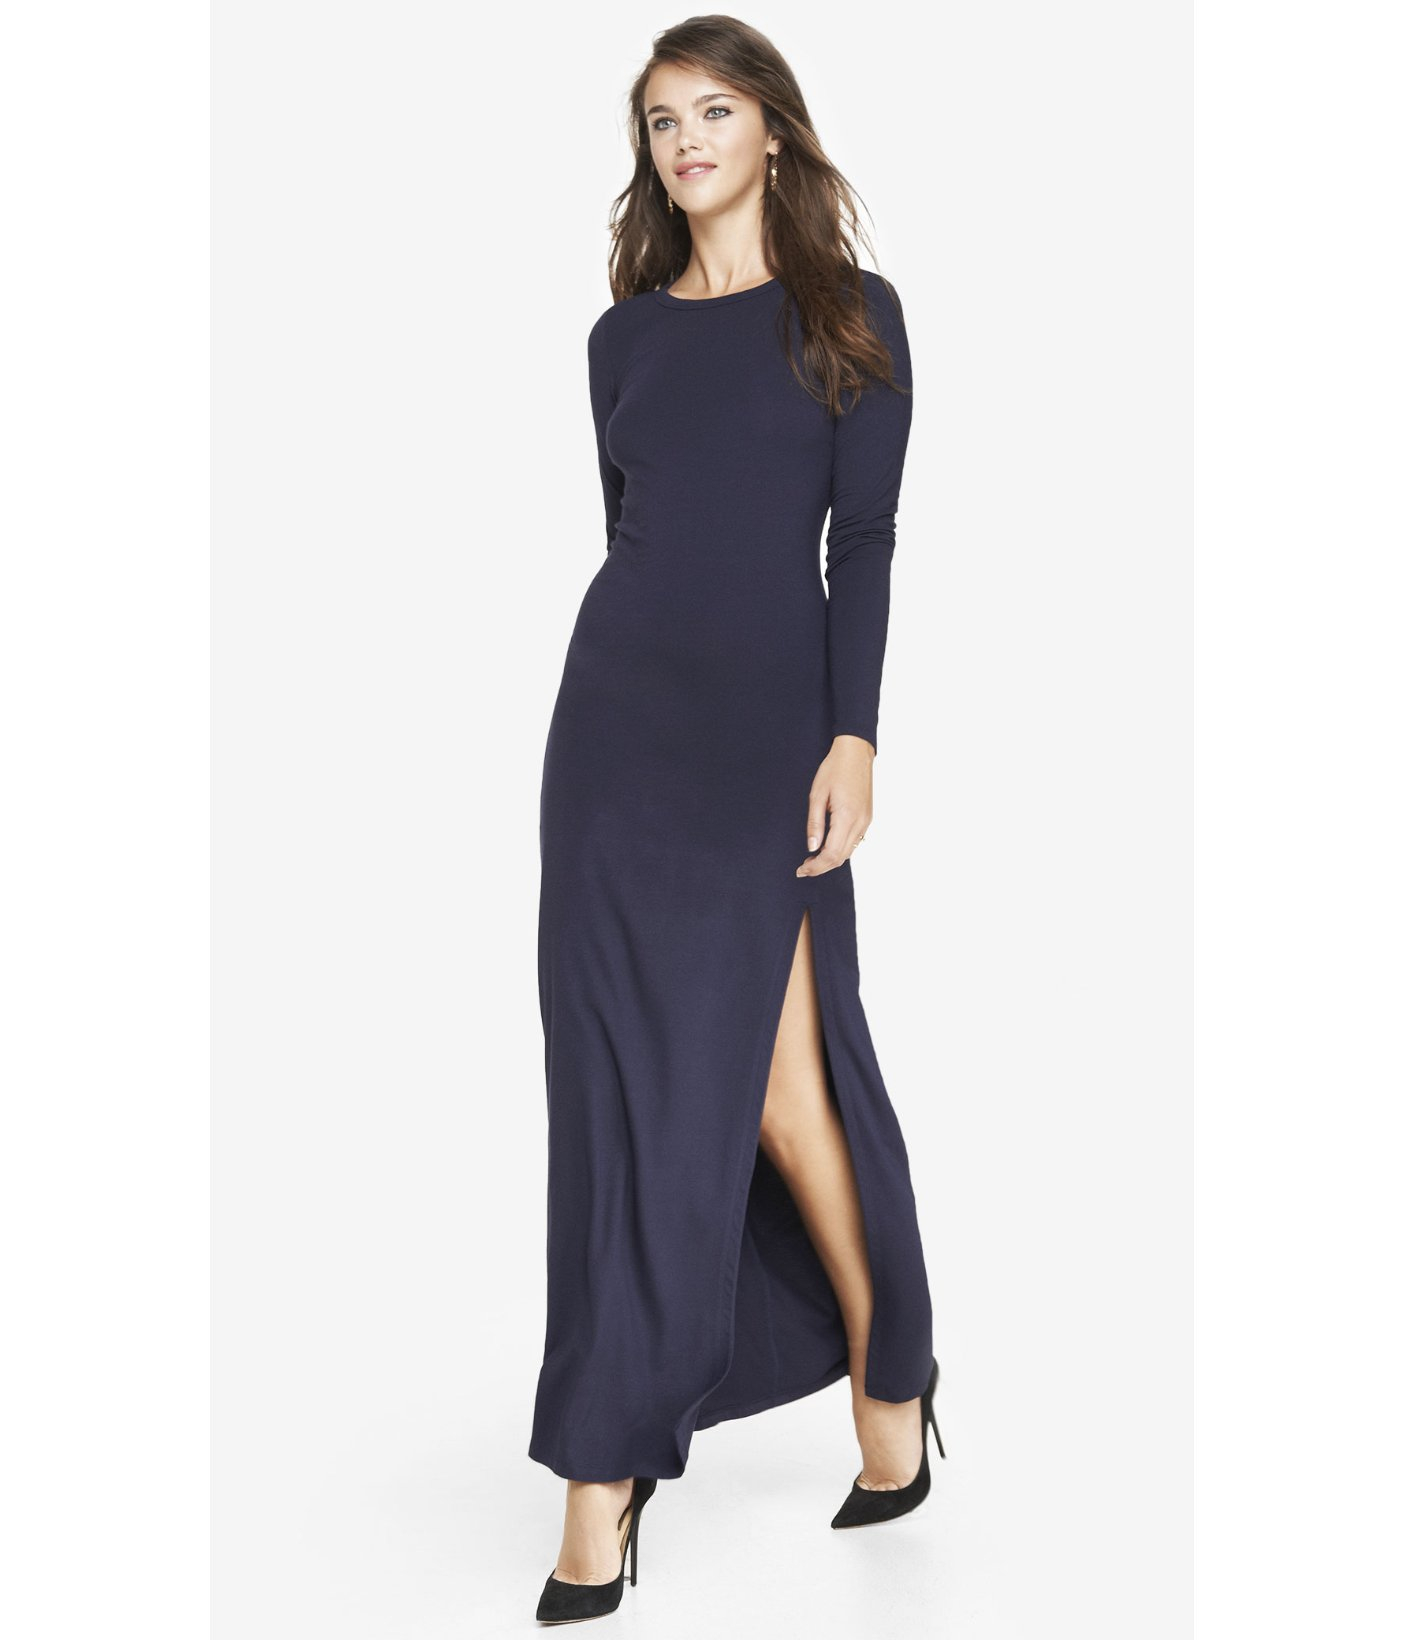 29bc23bf9a Lyst - Express Long Sleeve Slit Front Maxi Dress - Indigo in Blue